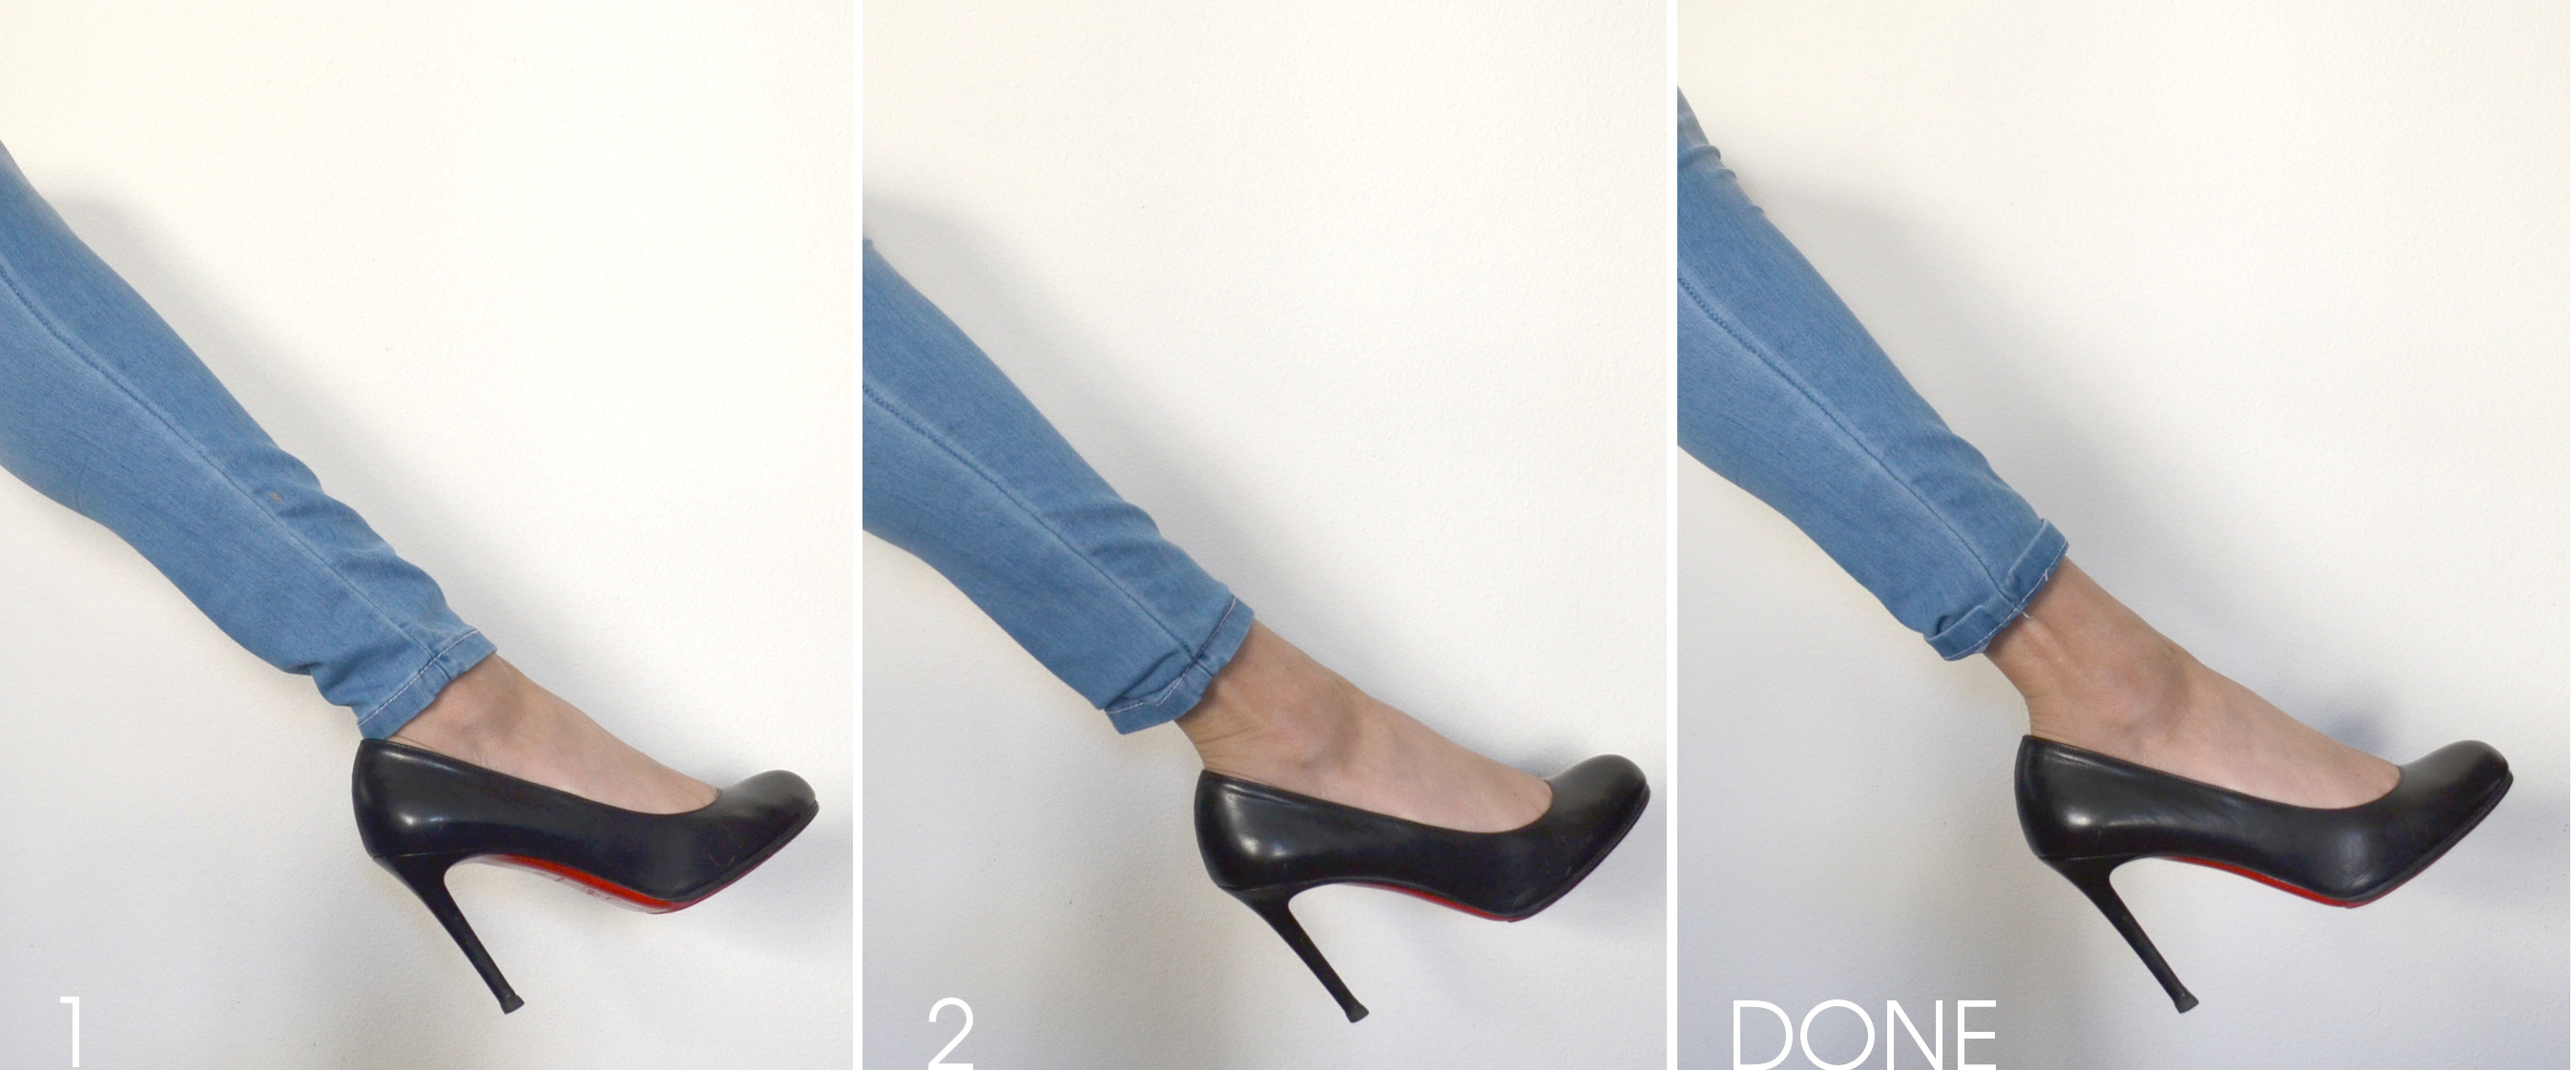 how to shorten jeans that are too long